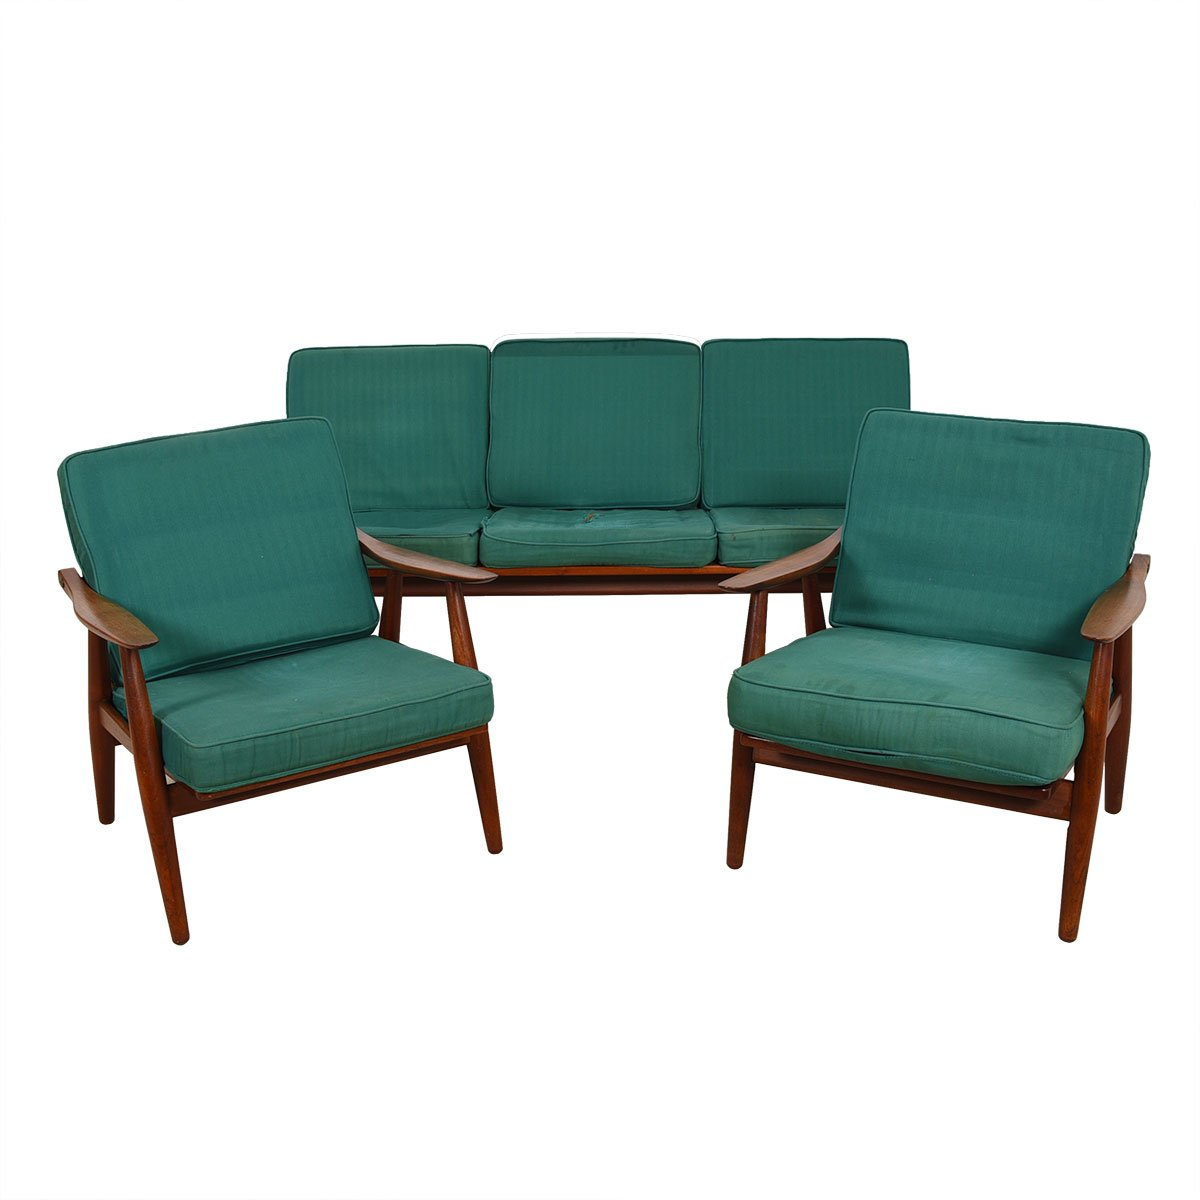 Hans Wegner Ge-270 Danish Teak Sofa & Pr Chairs Set.